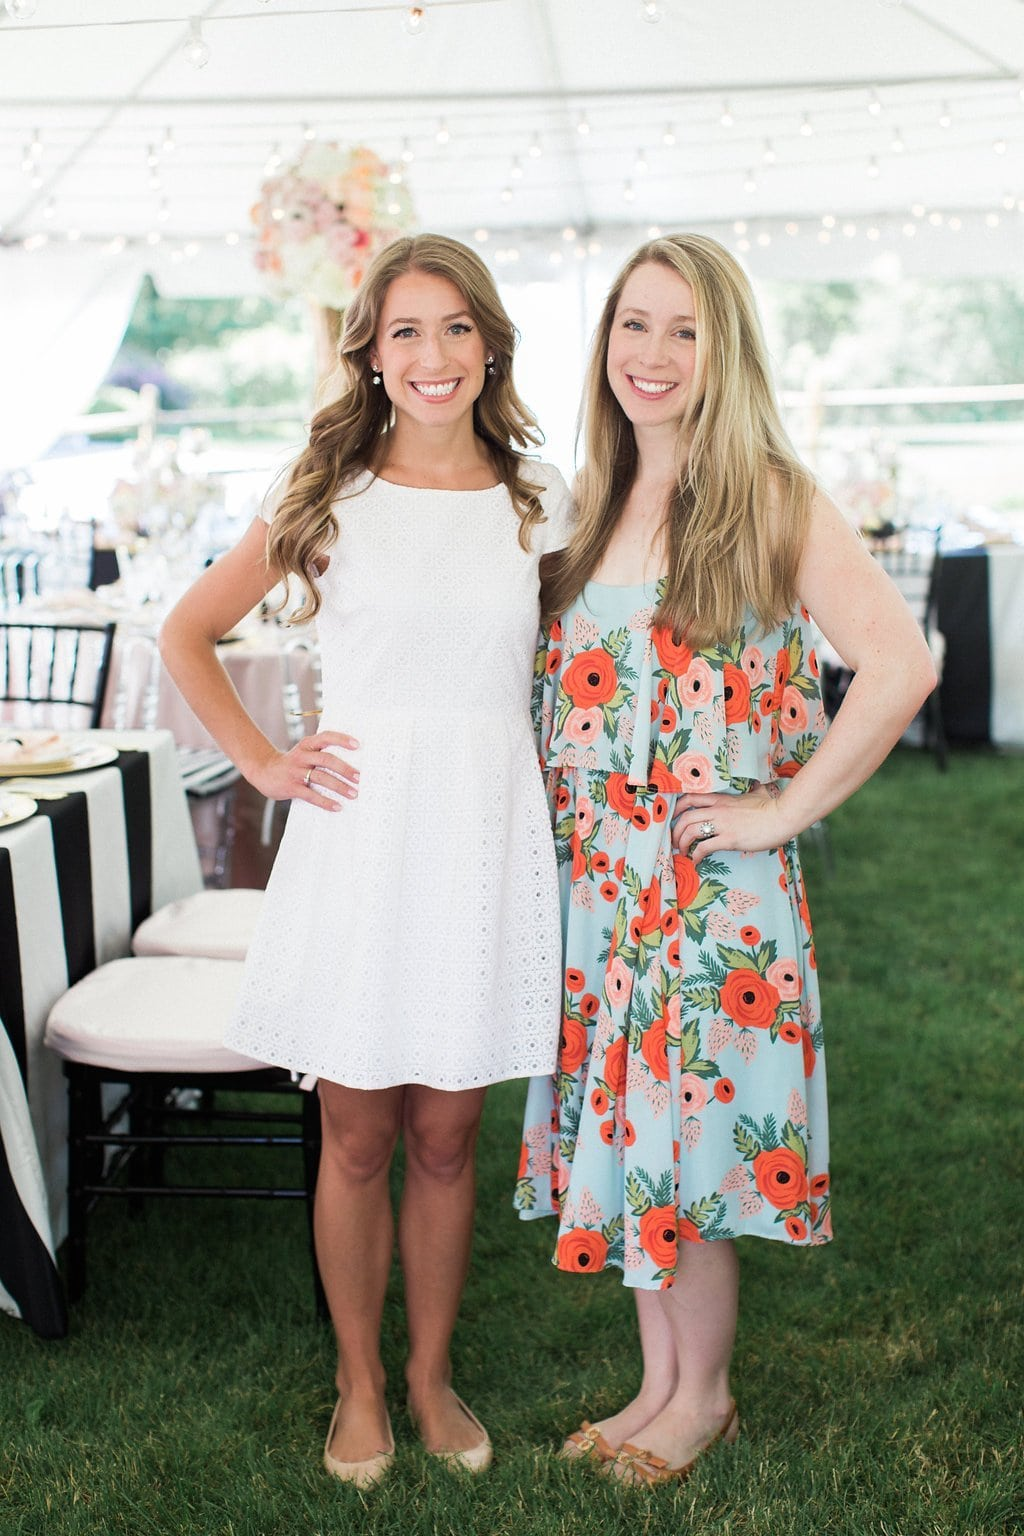 bride and sister at kate spade inspired bridal shower - Black & White Kate Spade Inspired Bridal Shower